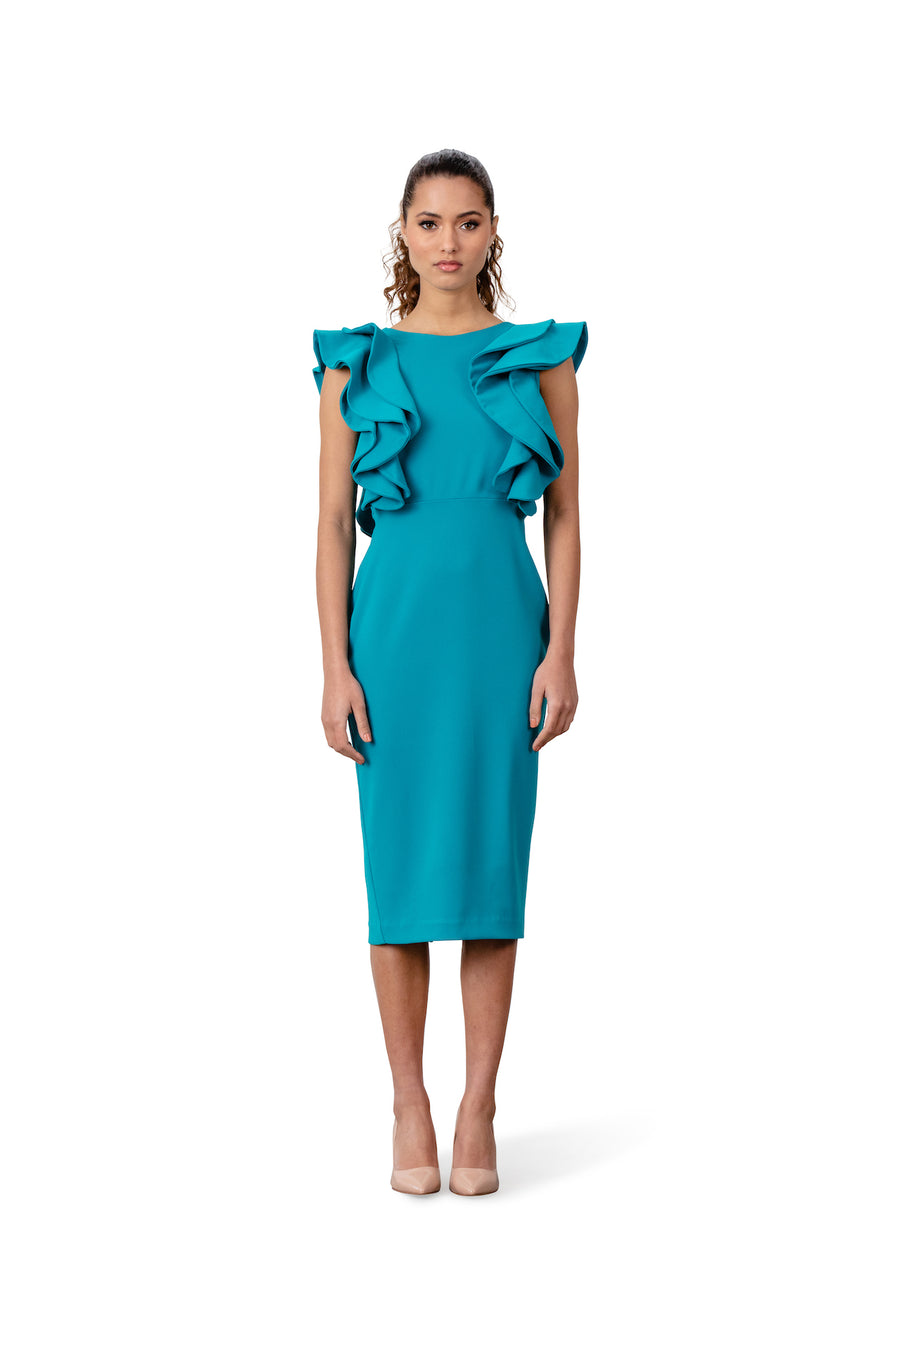 Diane Pencil Dress With Ruffle Sleeve - LIZNA